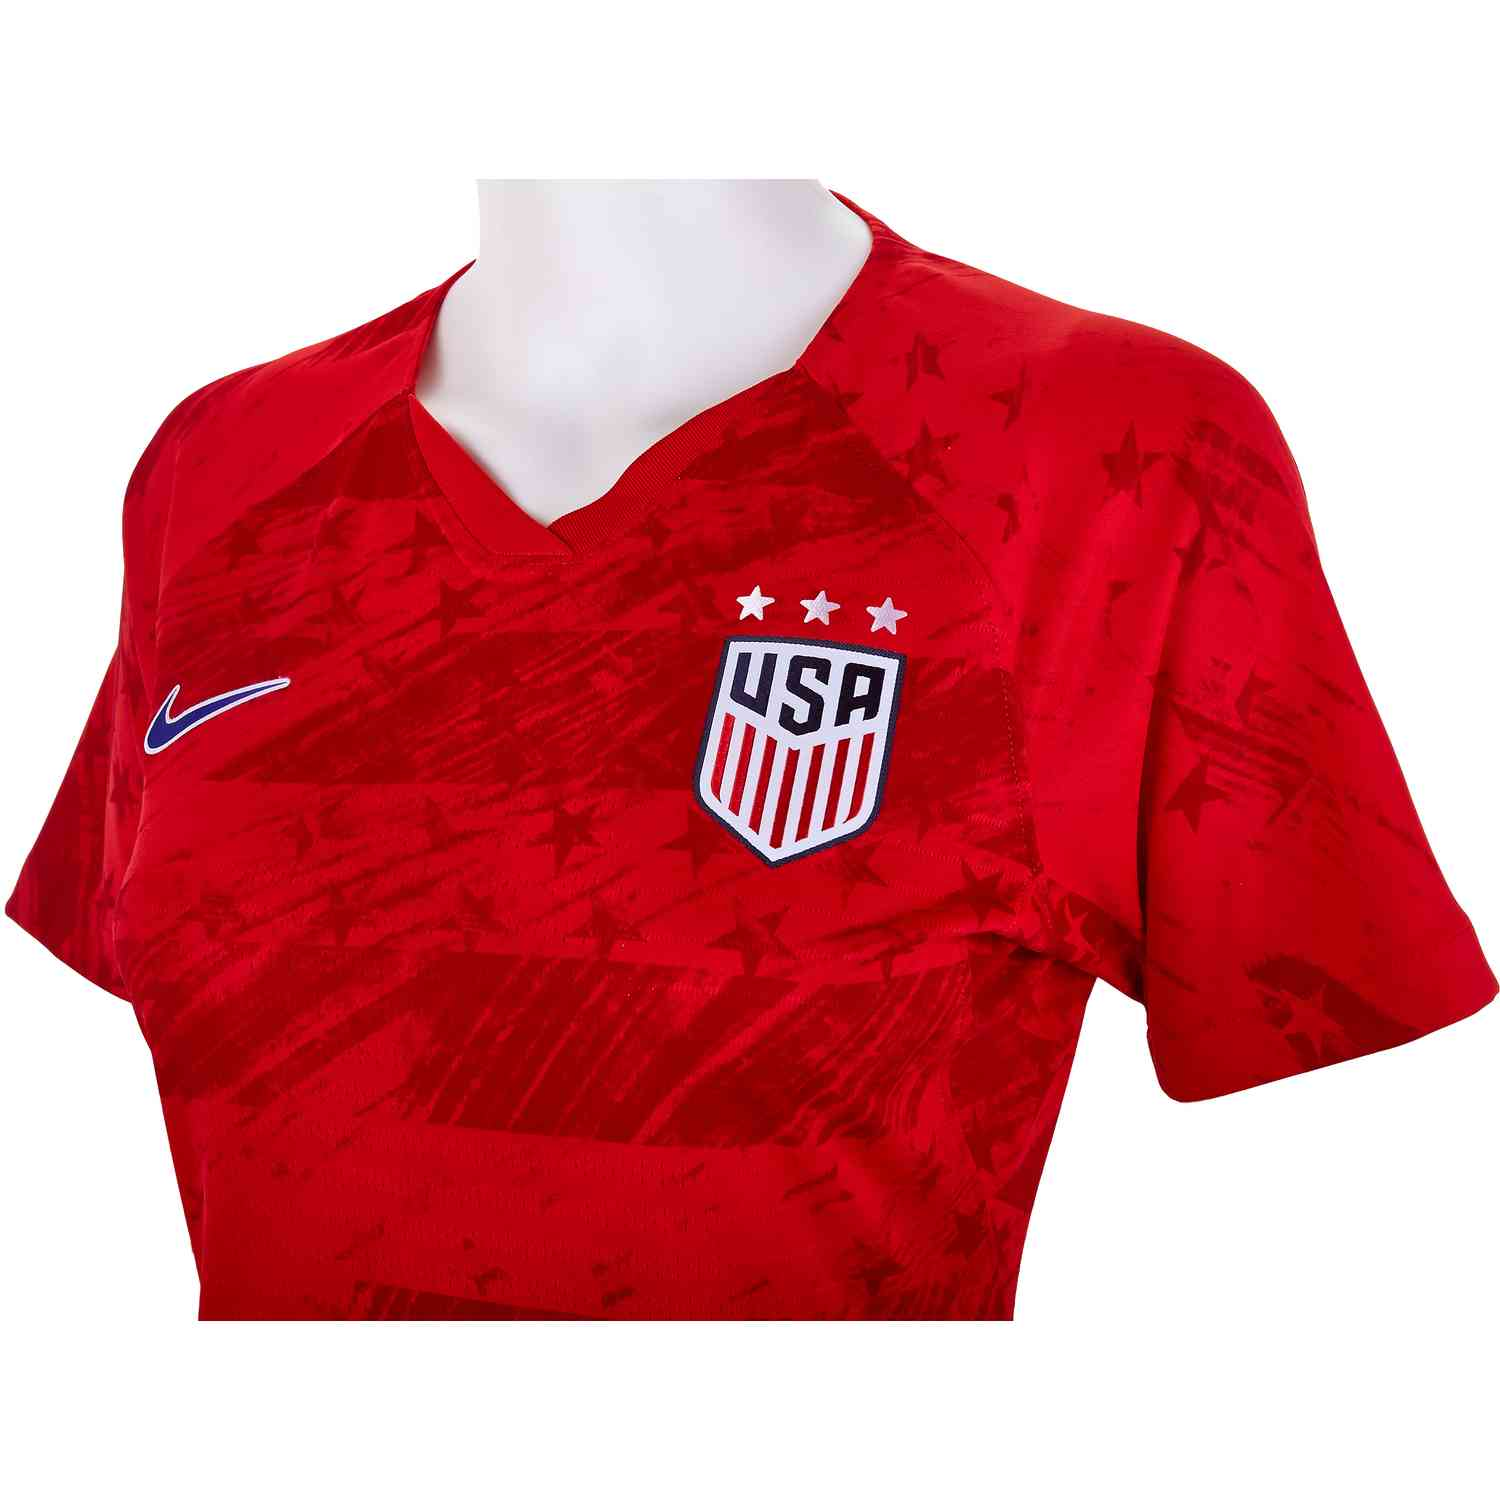 3352be1e6ff04 2019 Womens Nike Megan Rapinoe USWNT Away Match Jersey - SoccerPro